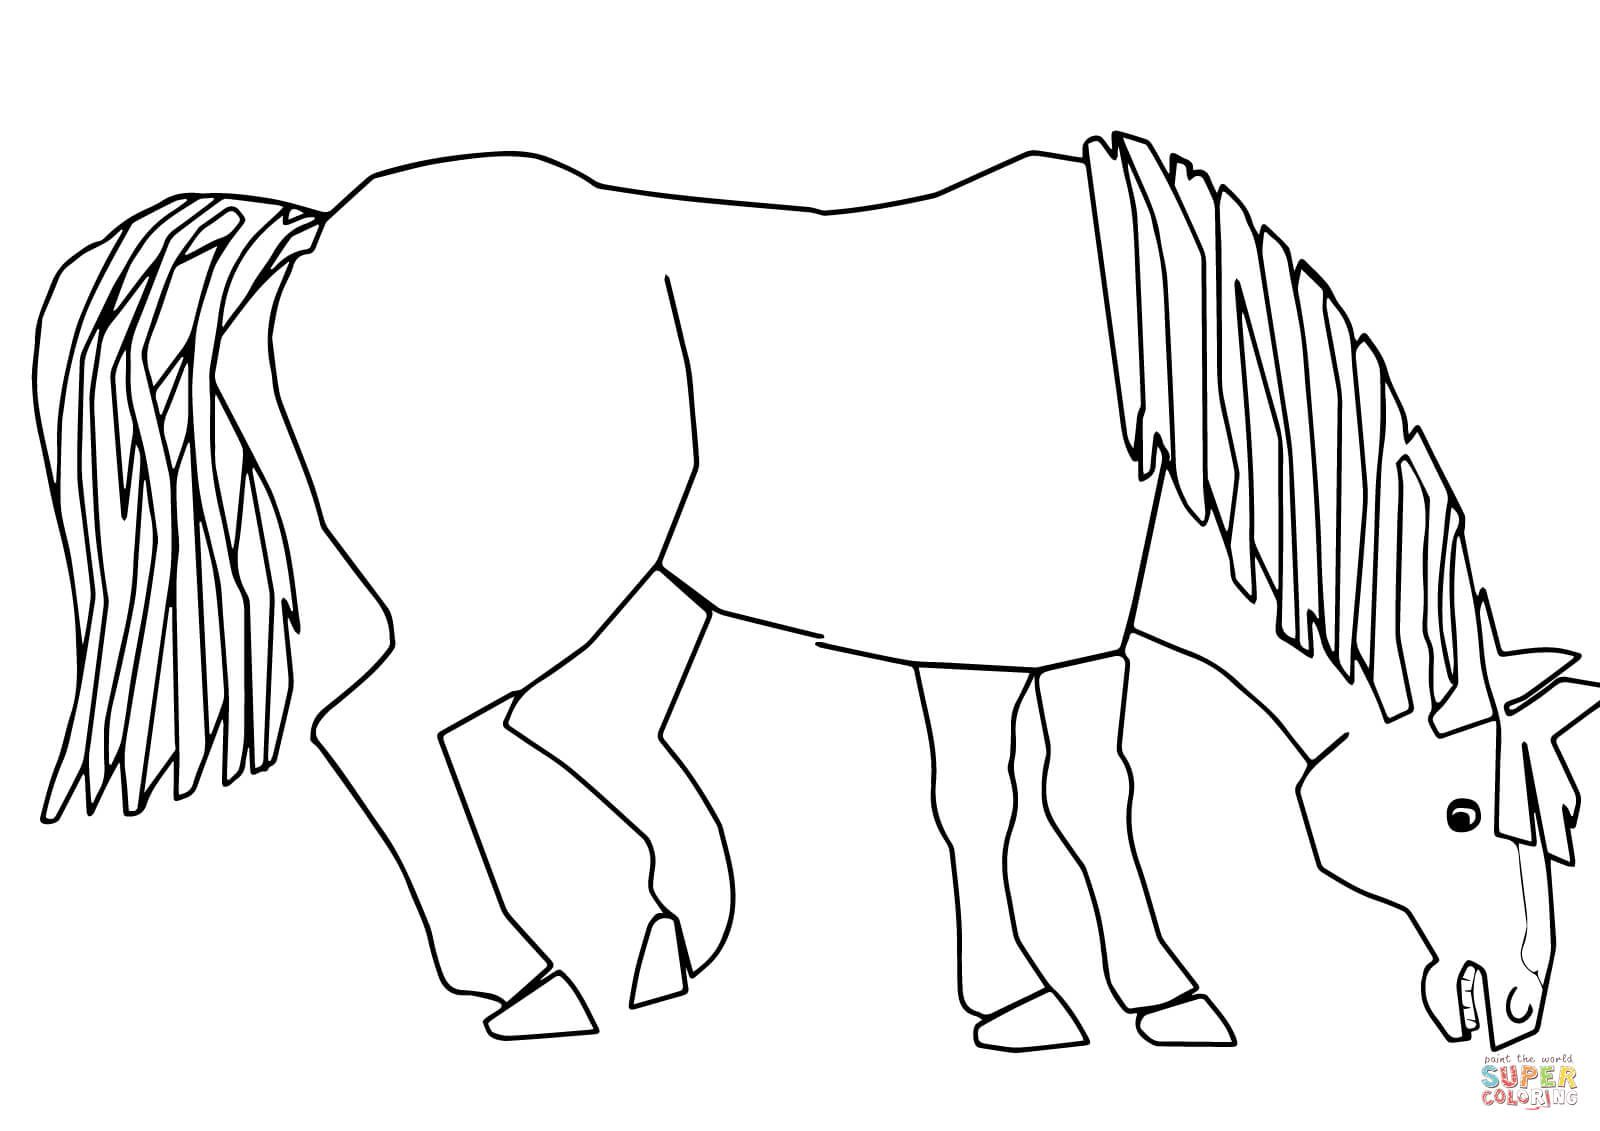 Blue Horse Blue Horse What do You See coloring page from Brown bear ...